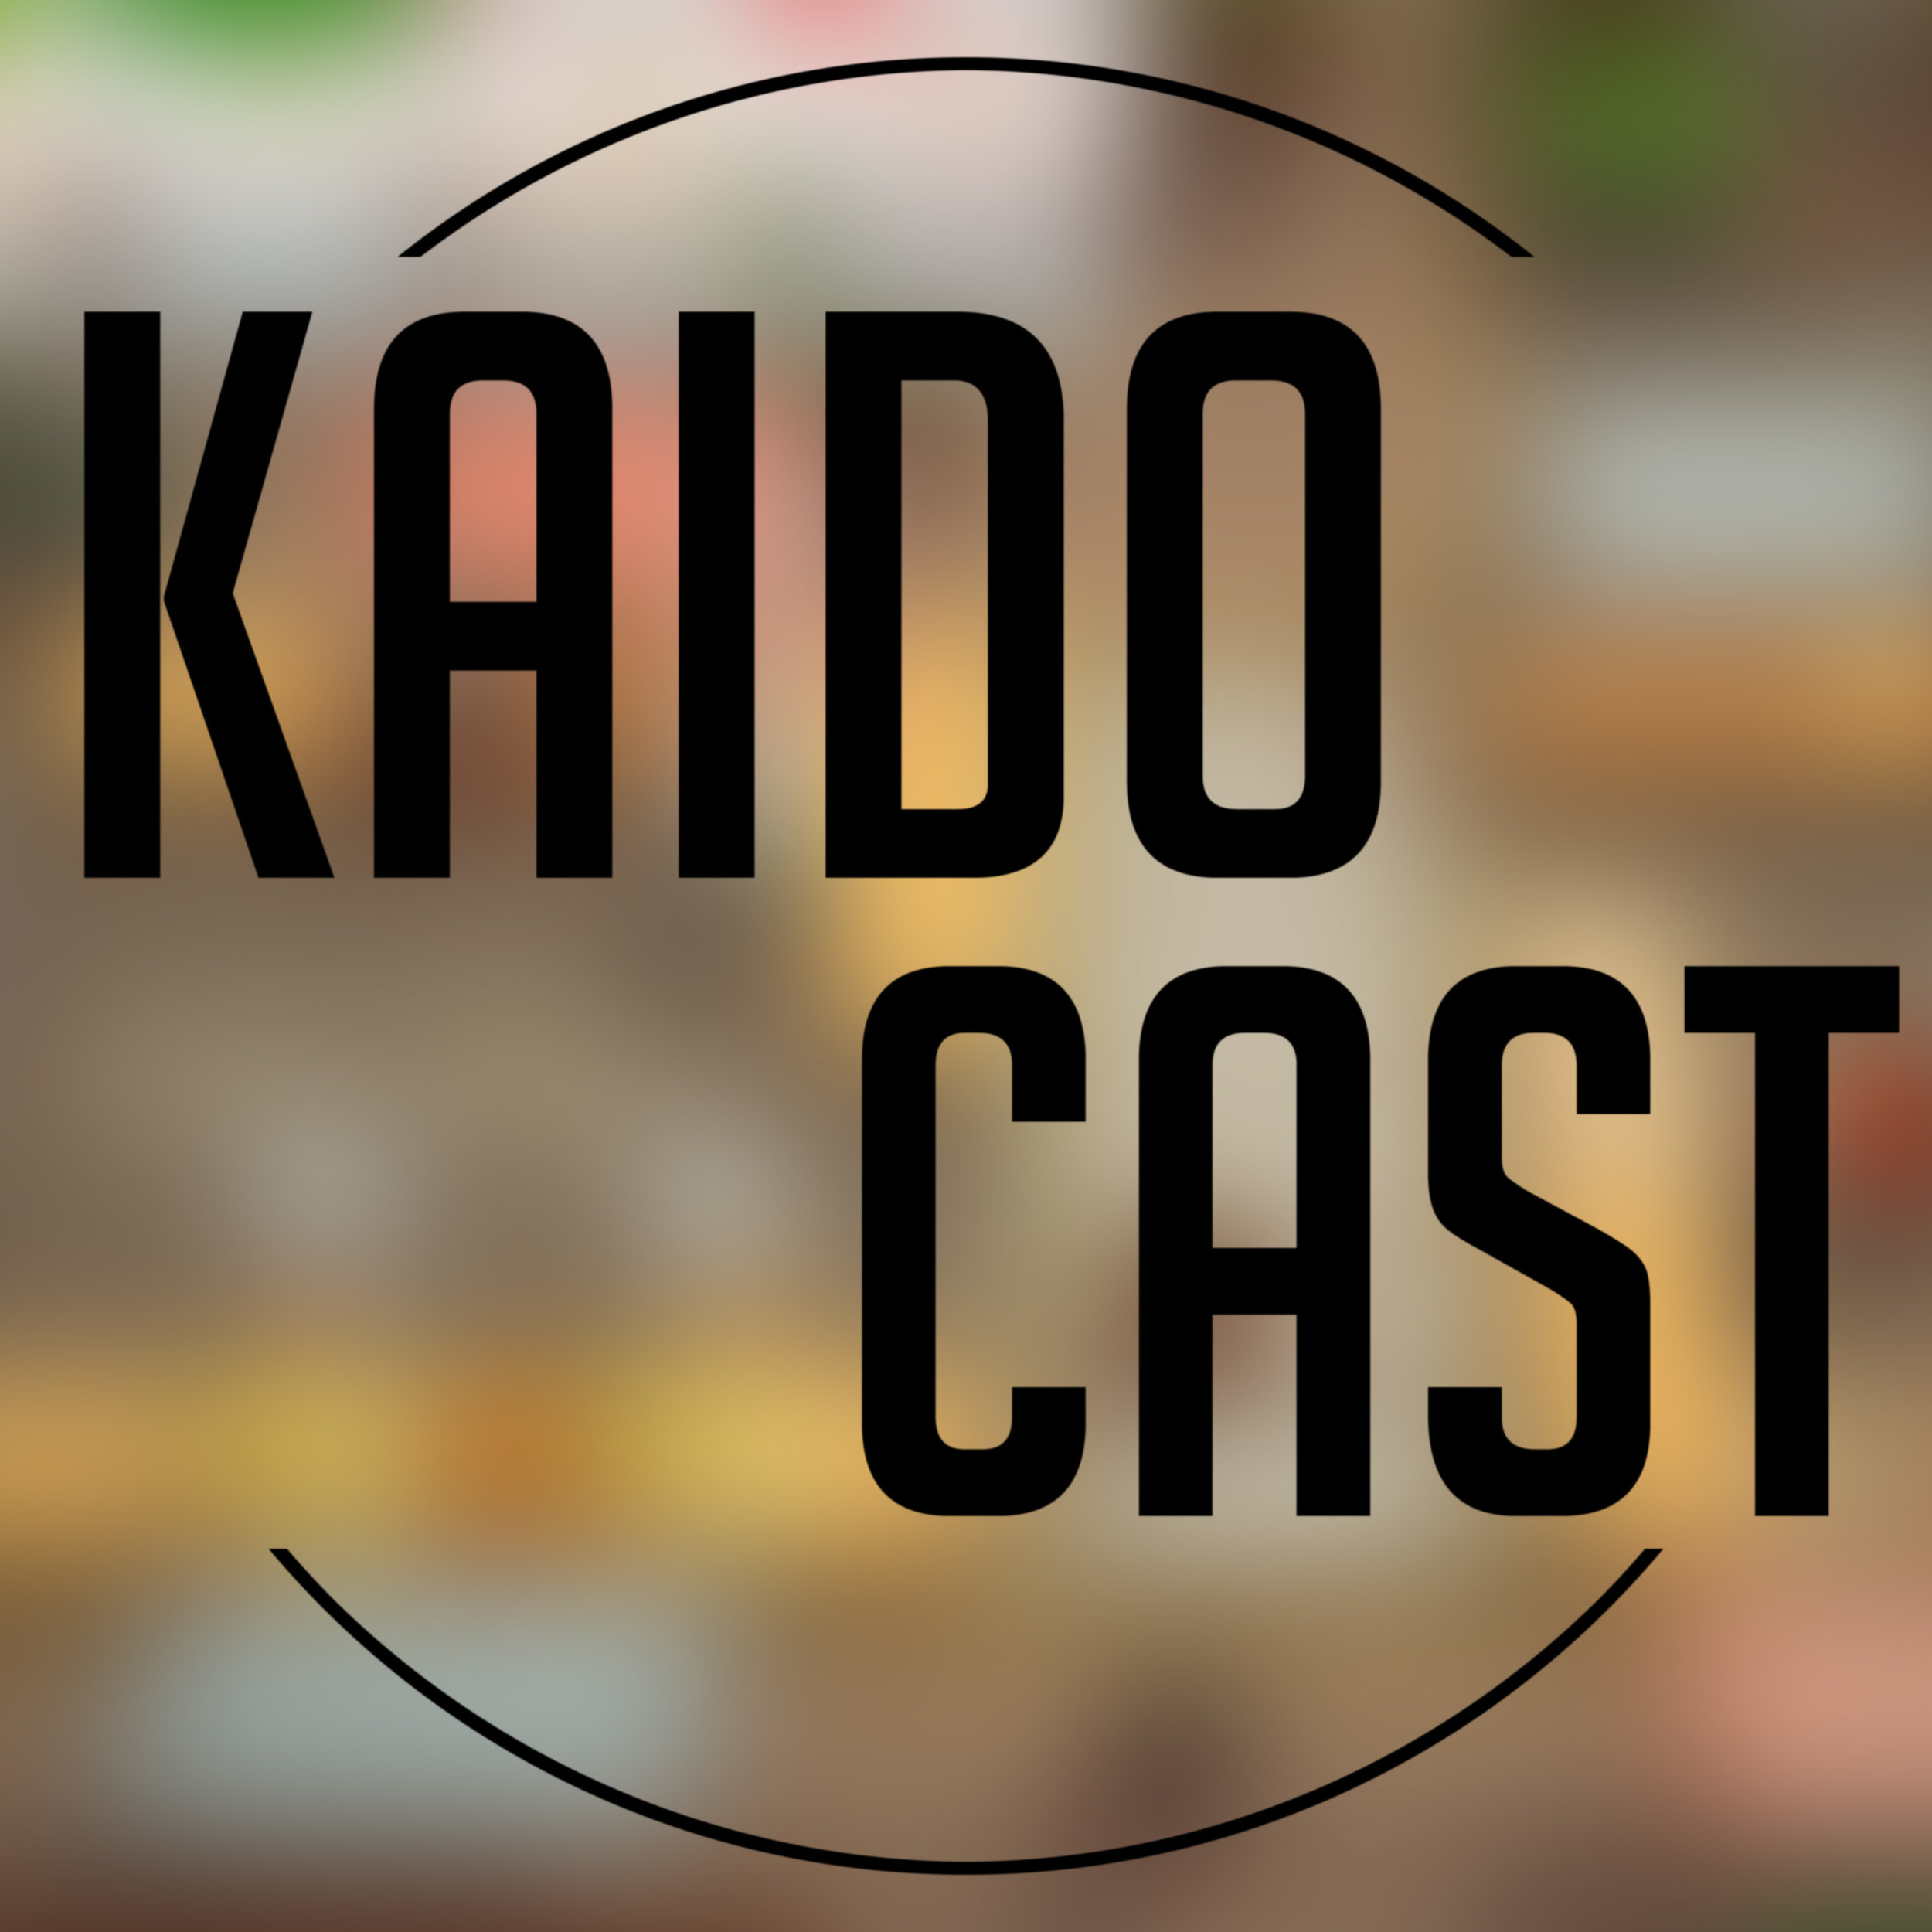 KAIDO Cast 09 - The Pacifist, the Anarchist, and the Chef - This week Dave finishes what has been started, Rob is blasting through space, and Zac sucks at cooking.